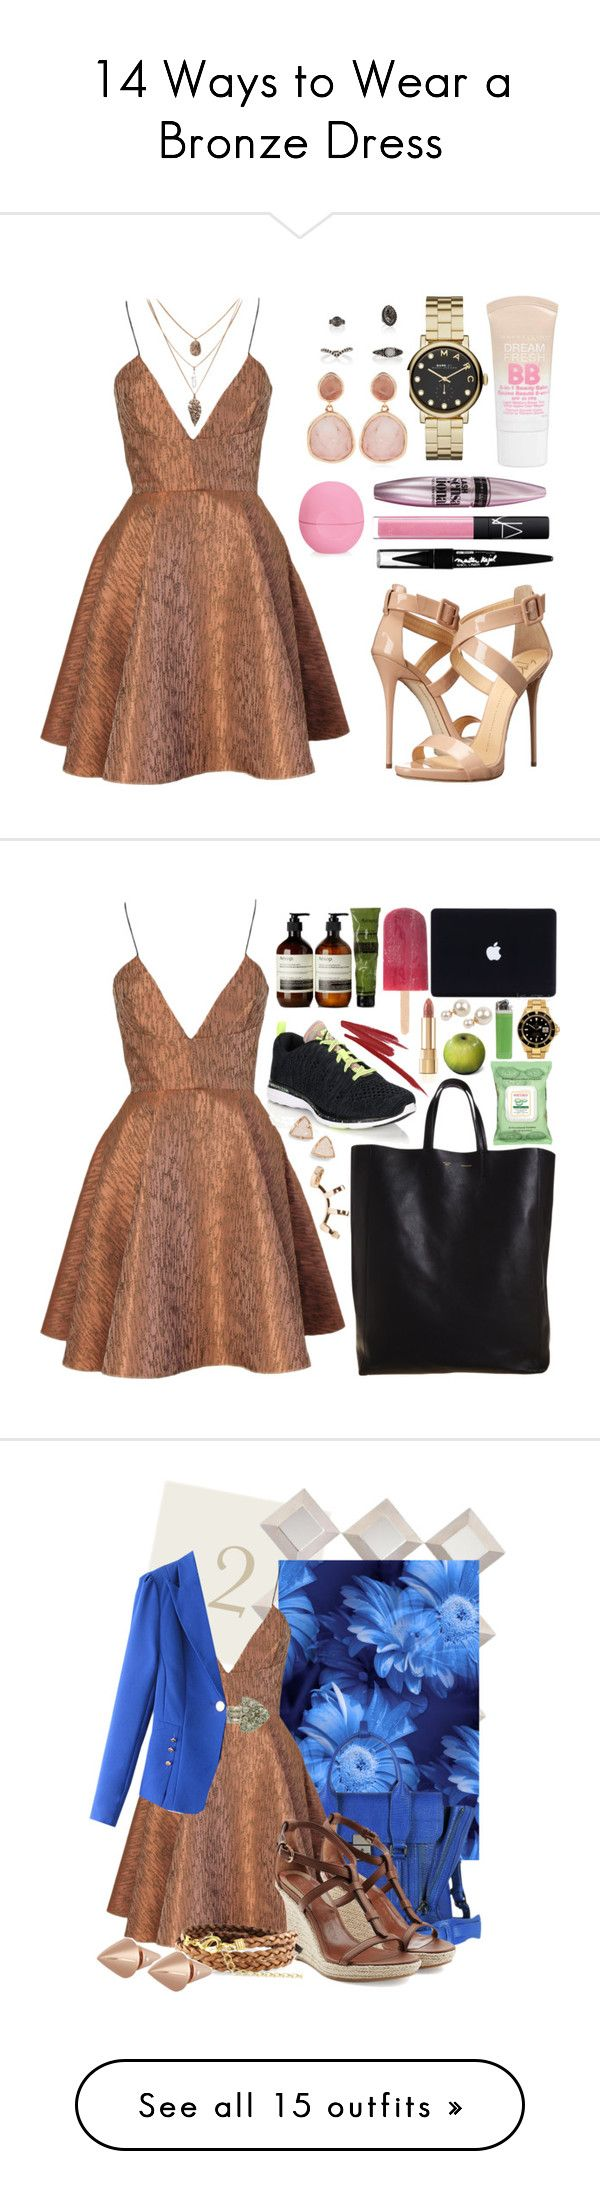 """""""14 Ways to Wear a Bronze Dress"""" by polyvore-editorial ❤ liked on Polyvore featuring waystowear, bronzedress, Joana Almagro, Giuseppe Zanotti, Marc by Marc Jacobs, Monica Vinader, Maybelline, NARS Cosmetics, Eos and Athletic Propulsion Labs"""